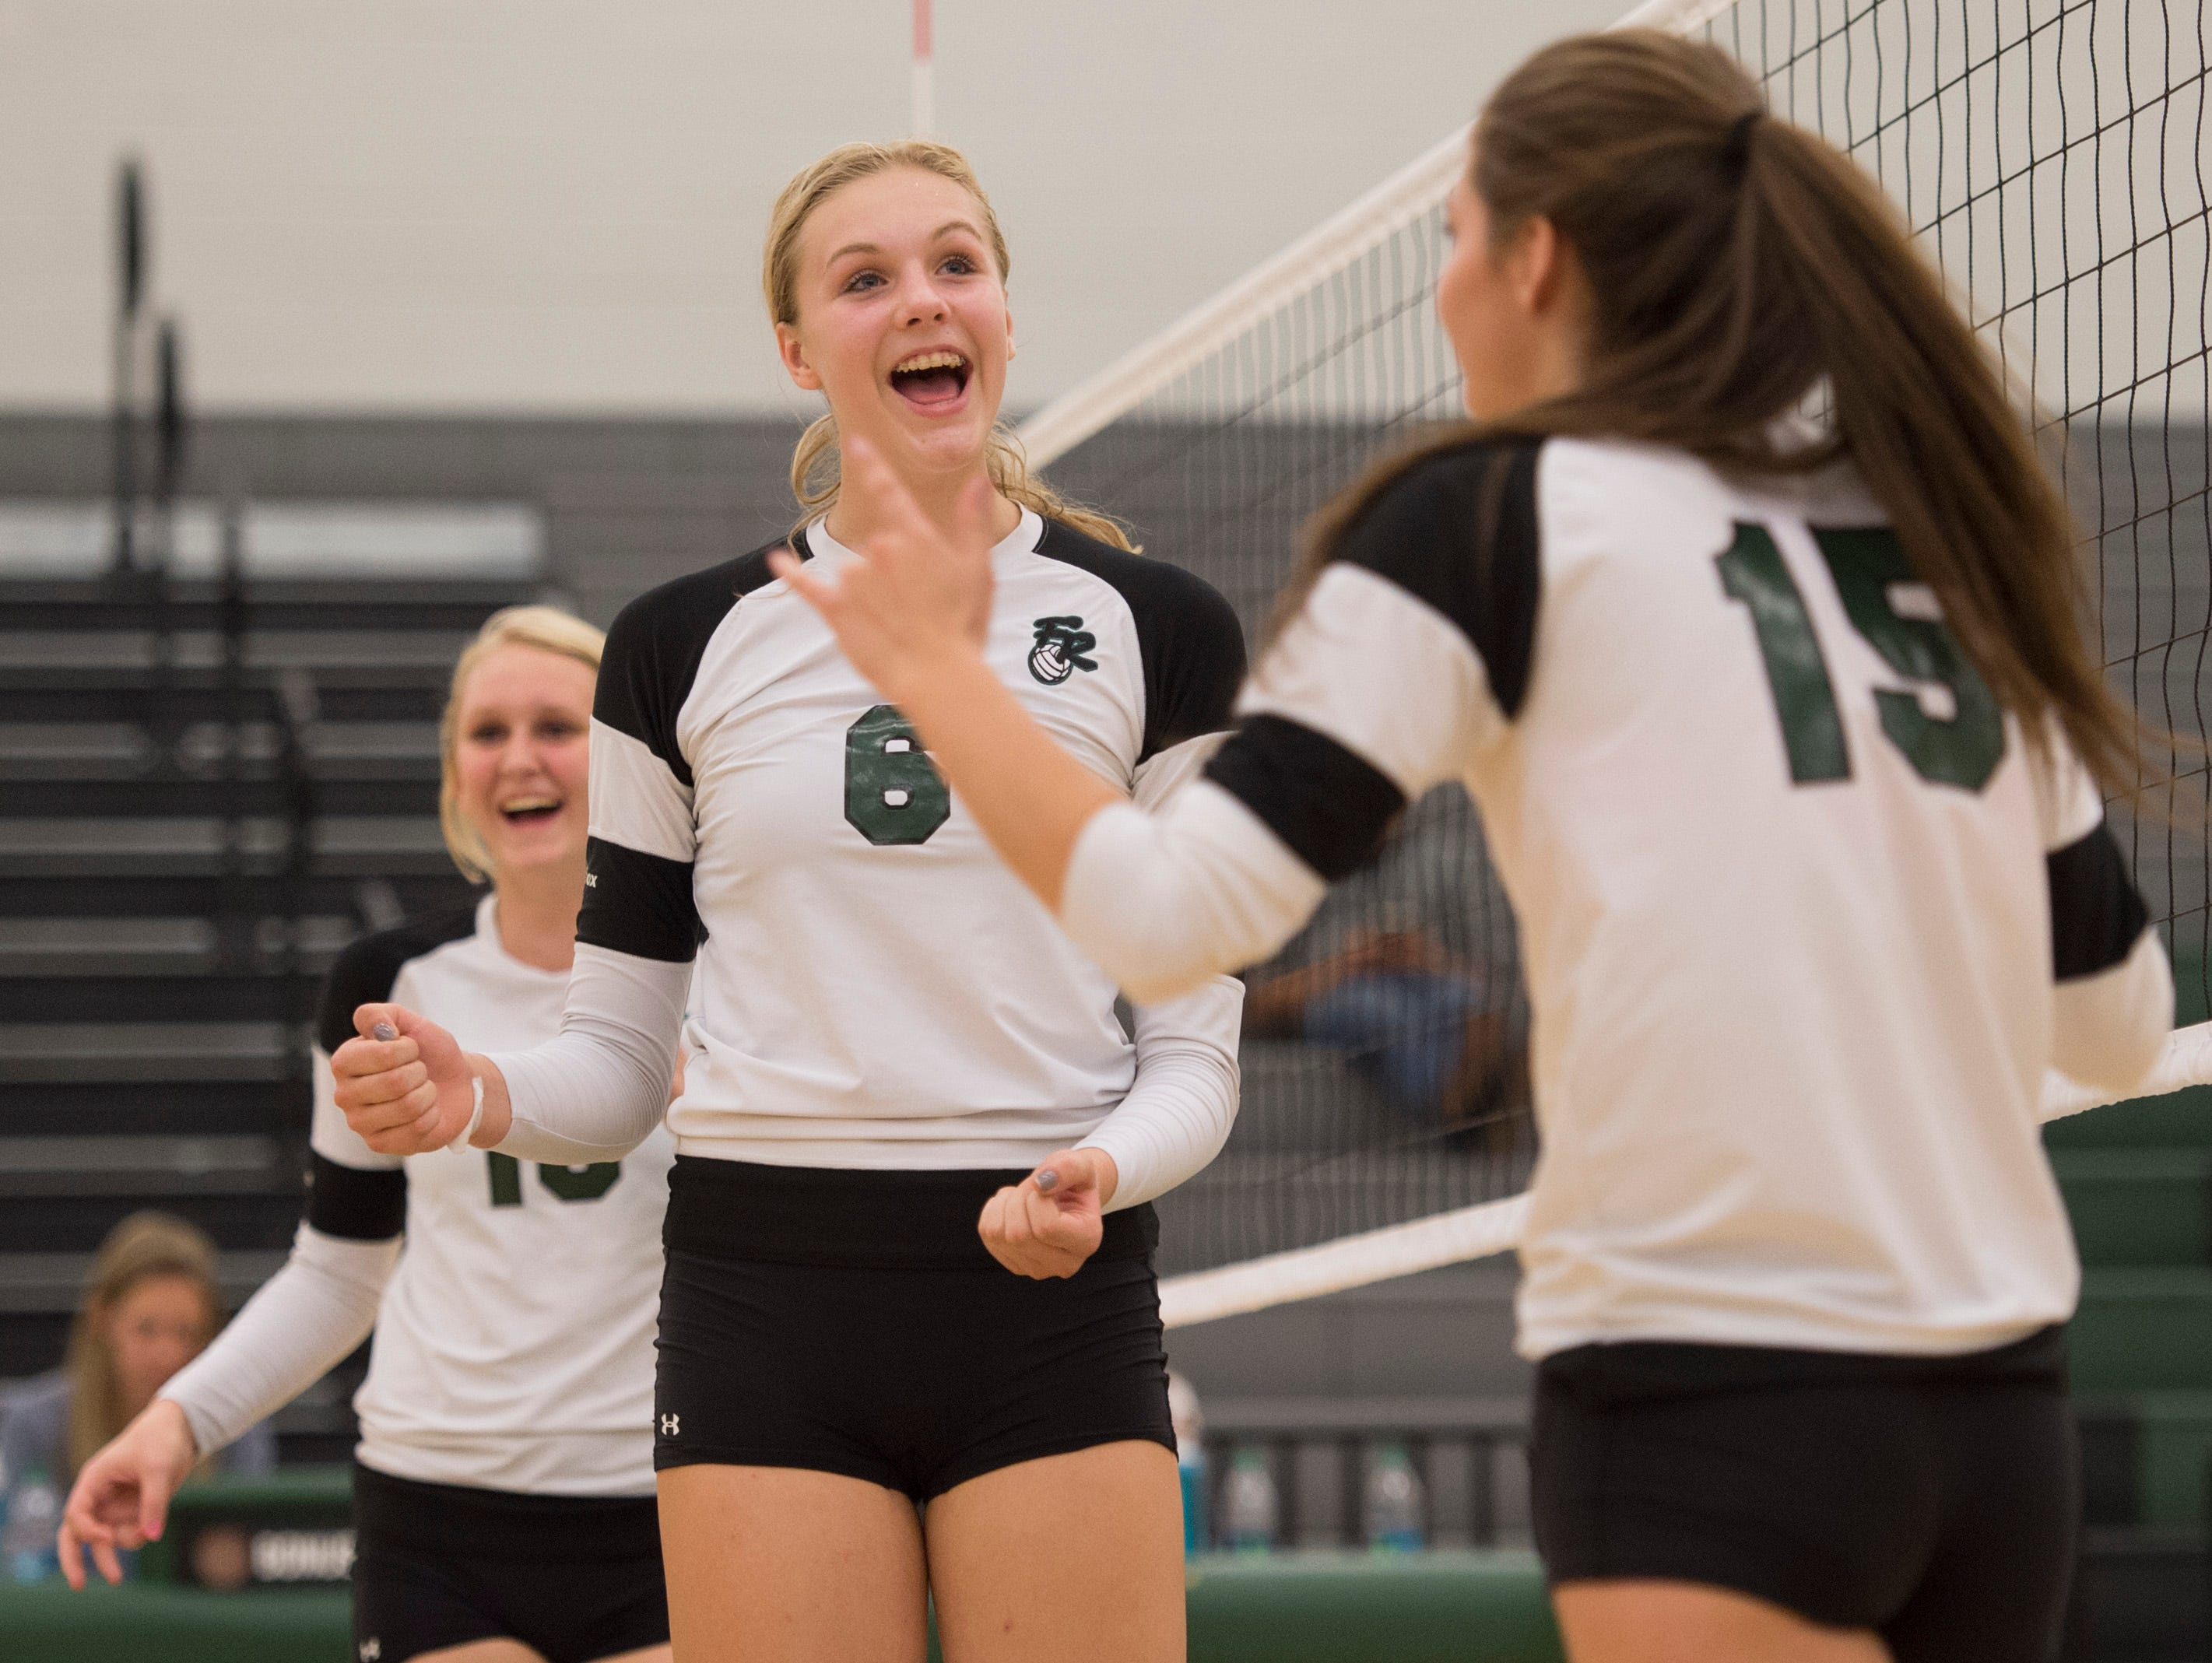 Riley Zuhn of Fossil Ridge celebrates with her teammates during a game against Horizon at Fossil Ridge High School Tuesday, September 29, 2015. The SaberCats swept Horizon High School 3-0.